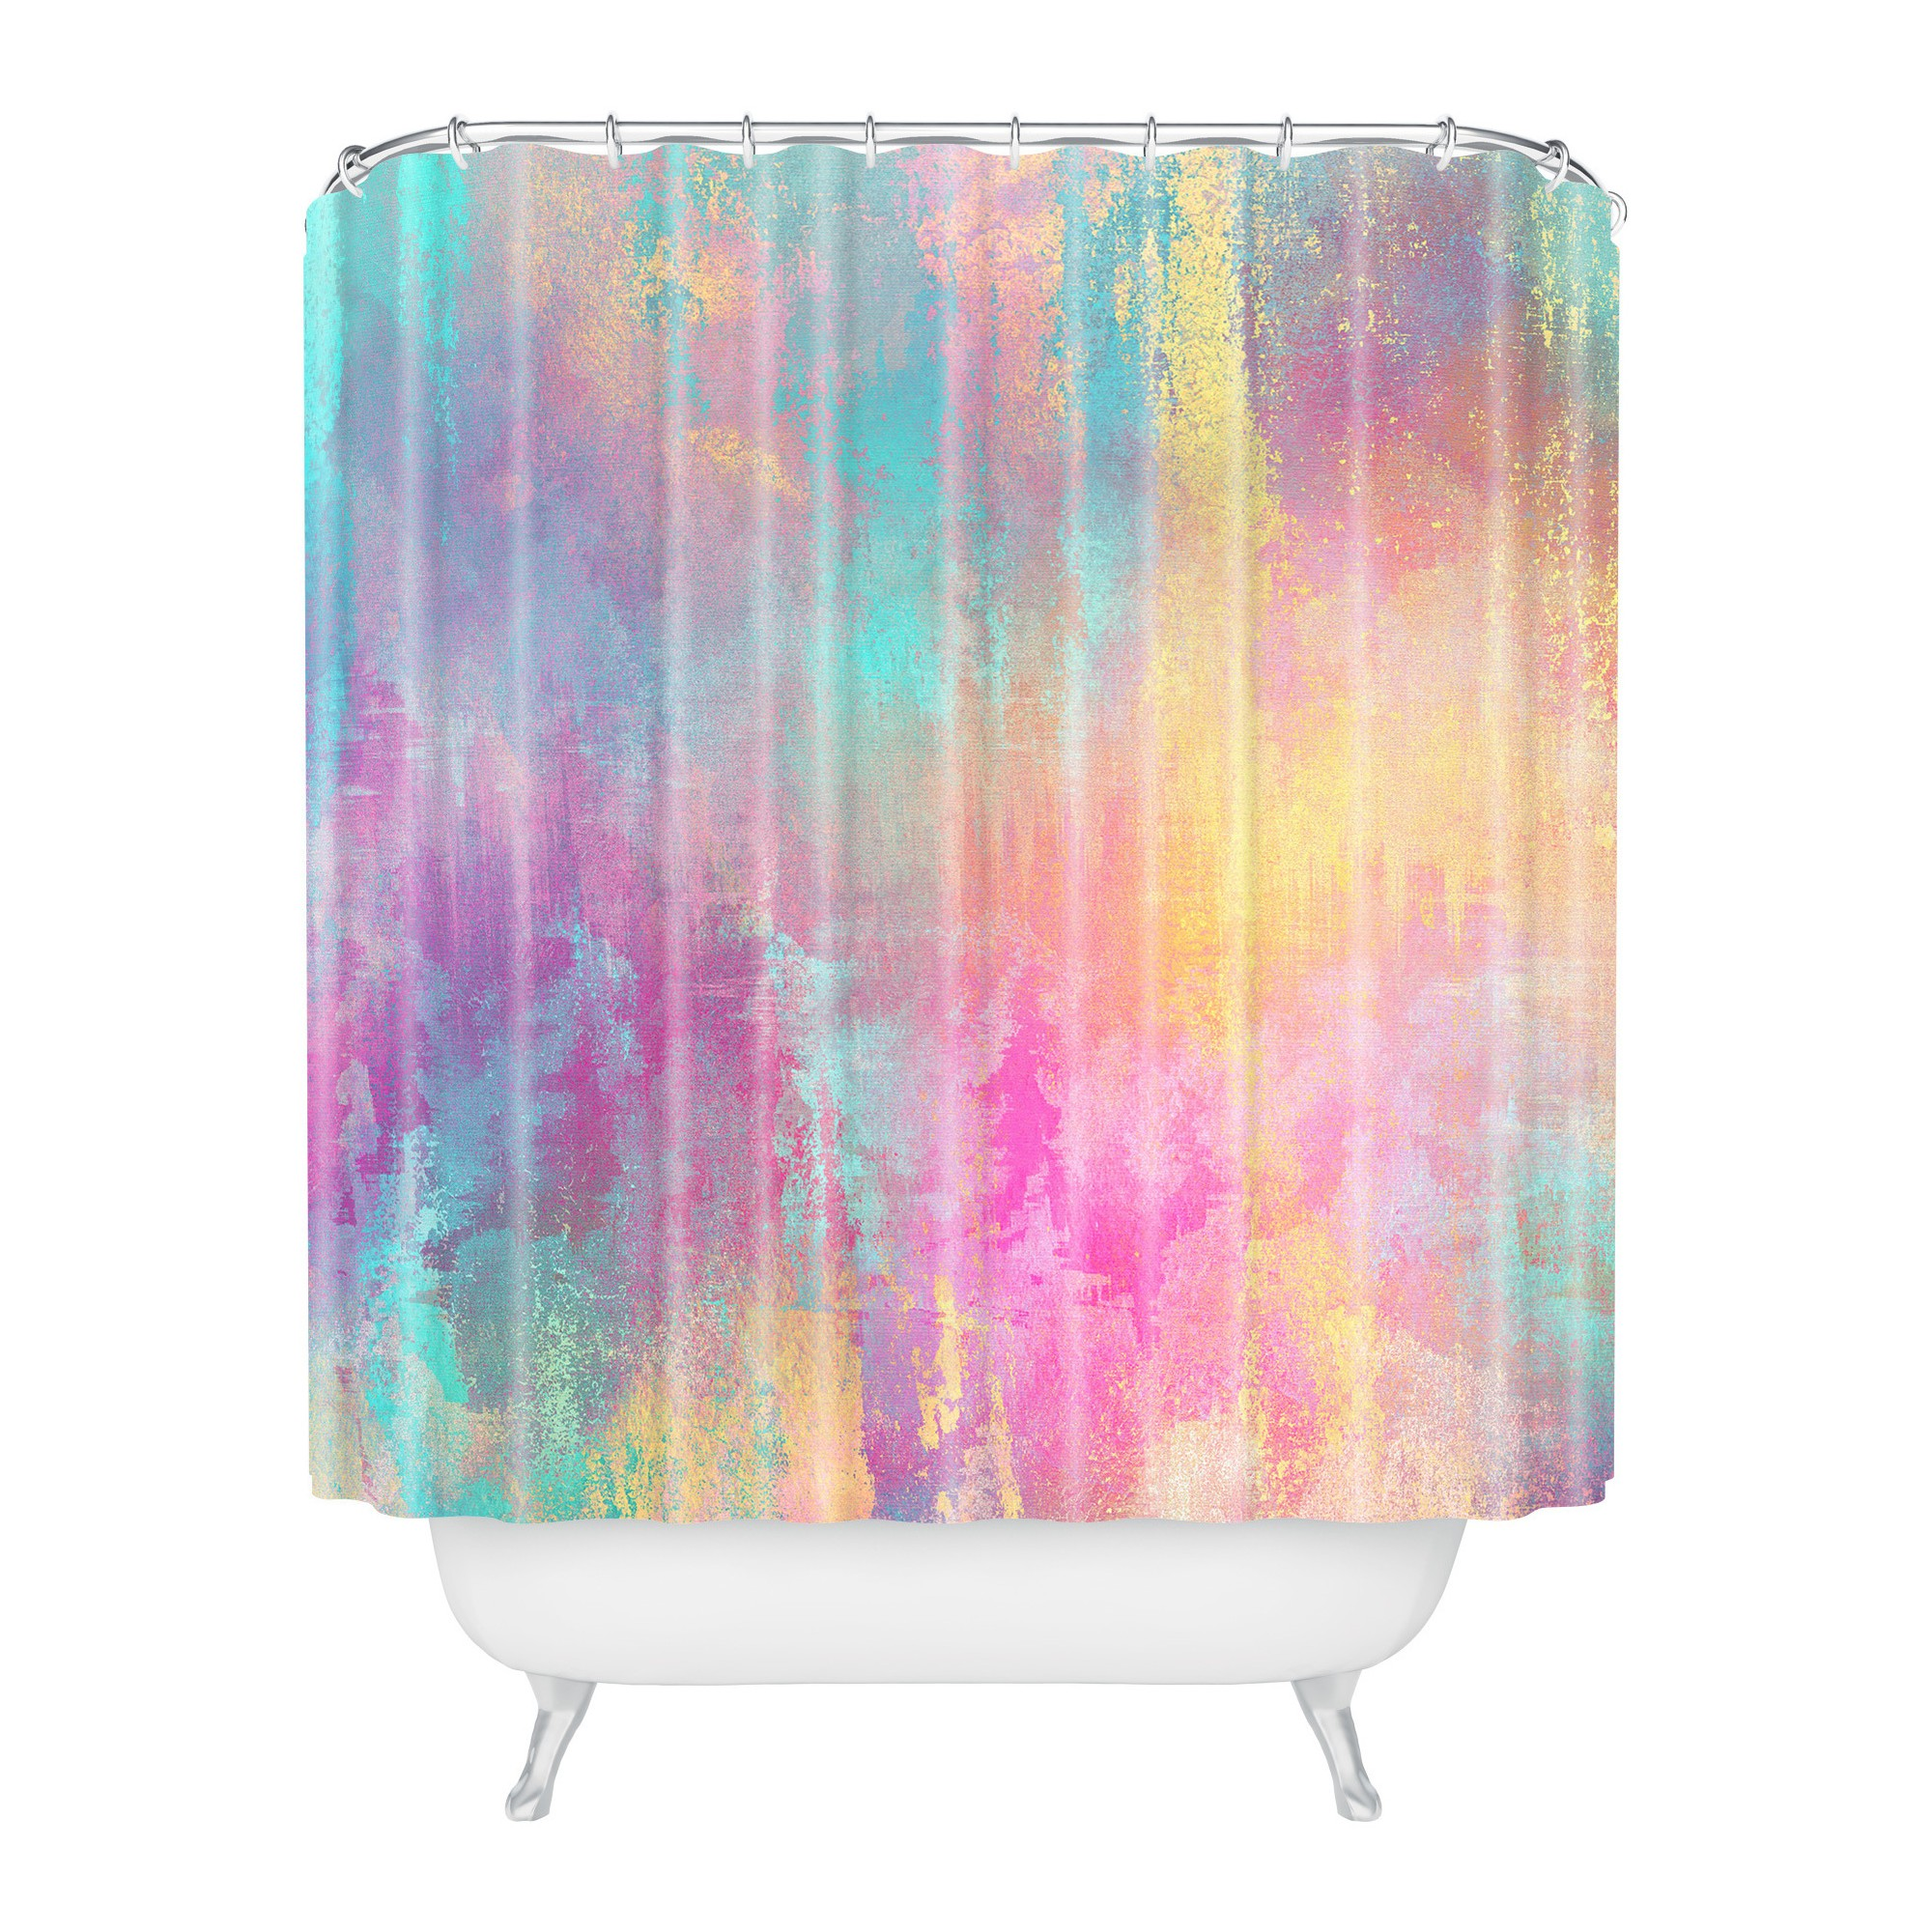 Watercolor Shower Curtain Pink Deny Designs Watercolor Shower